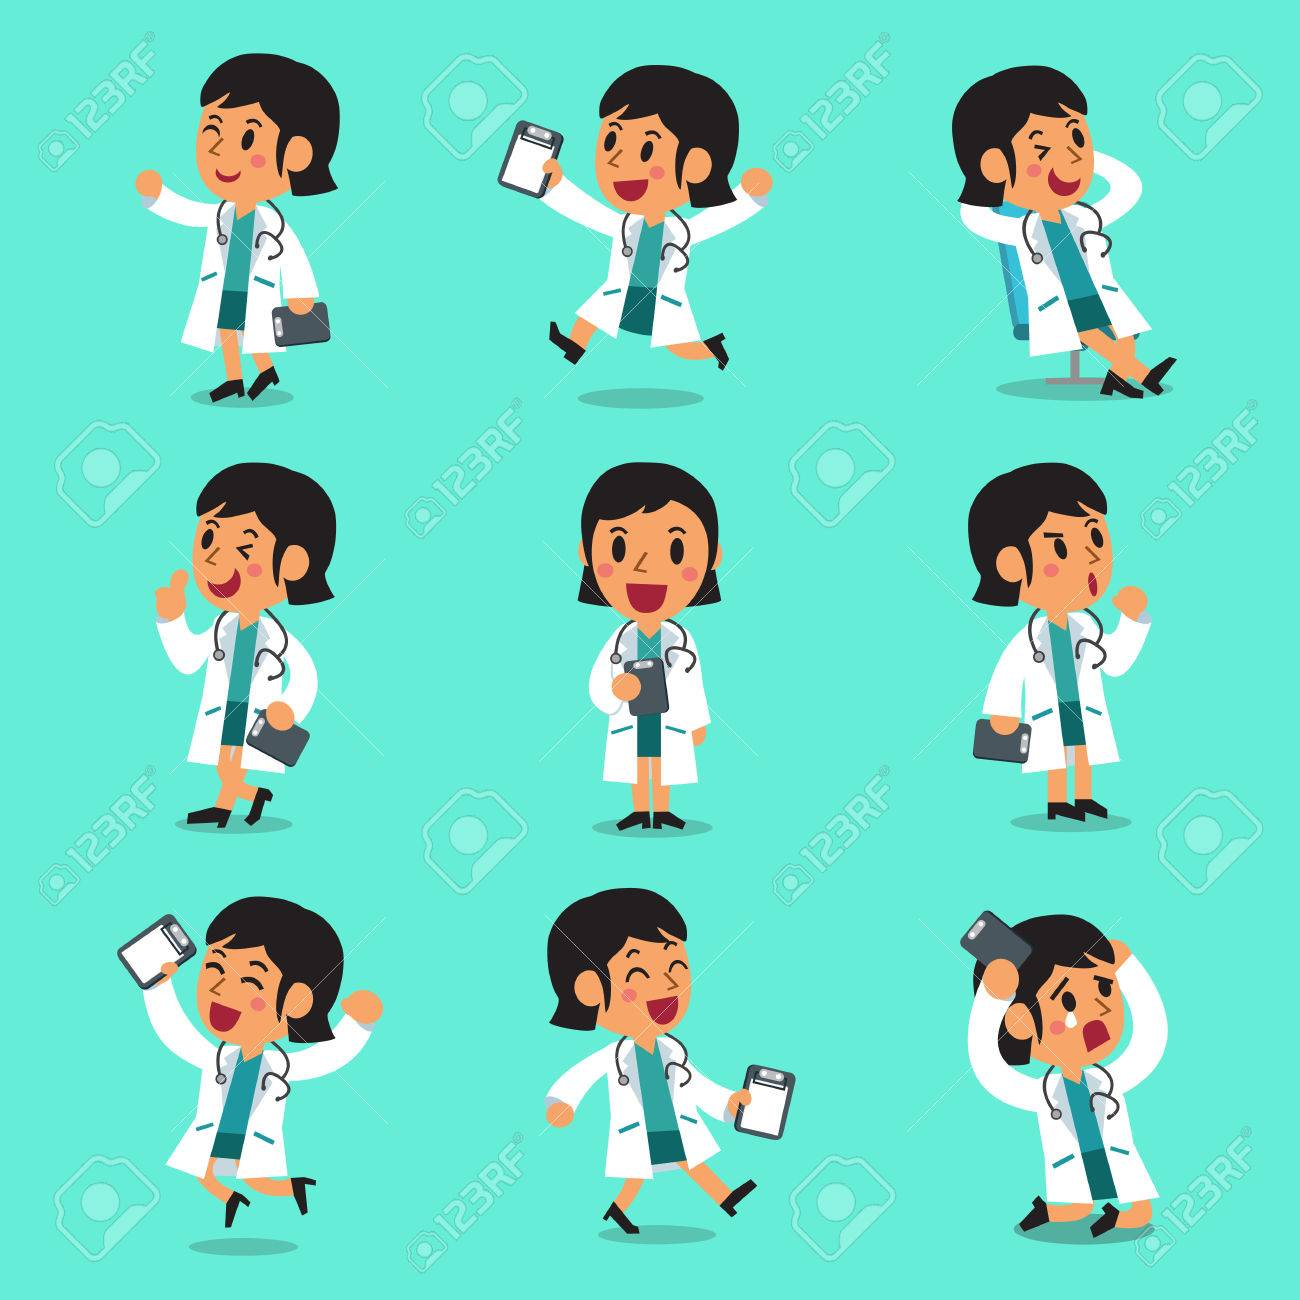 Cartoon female doctor character poses - 53668730